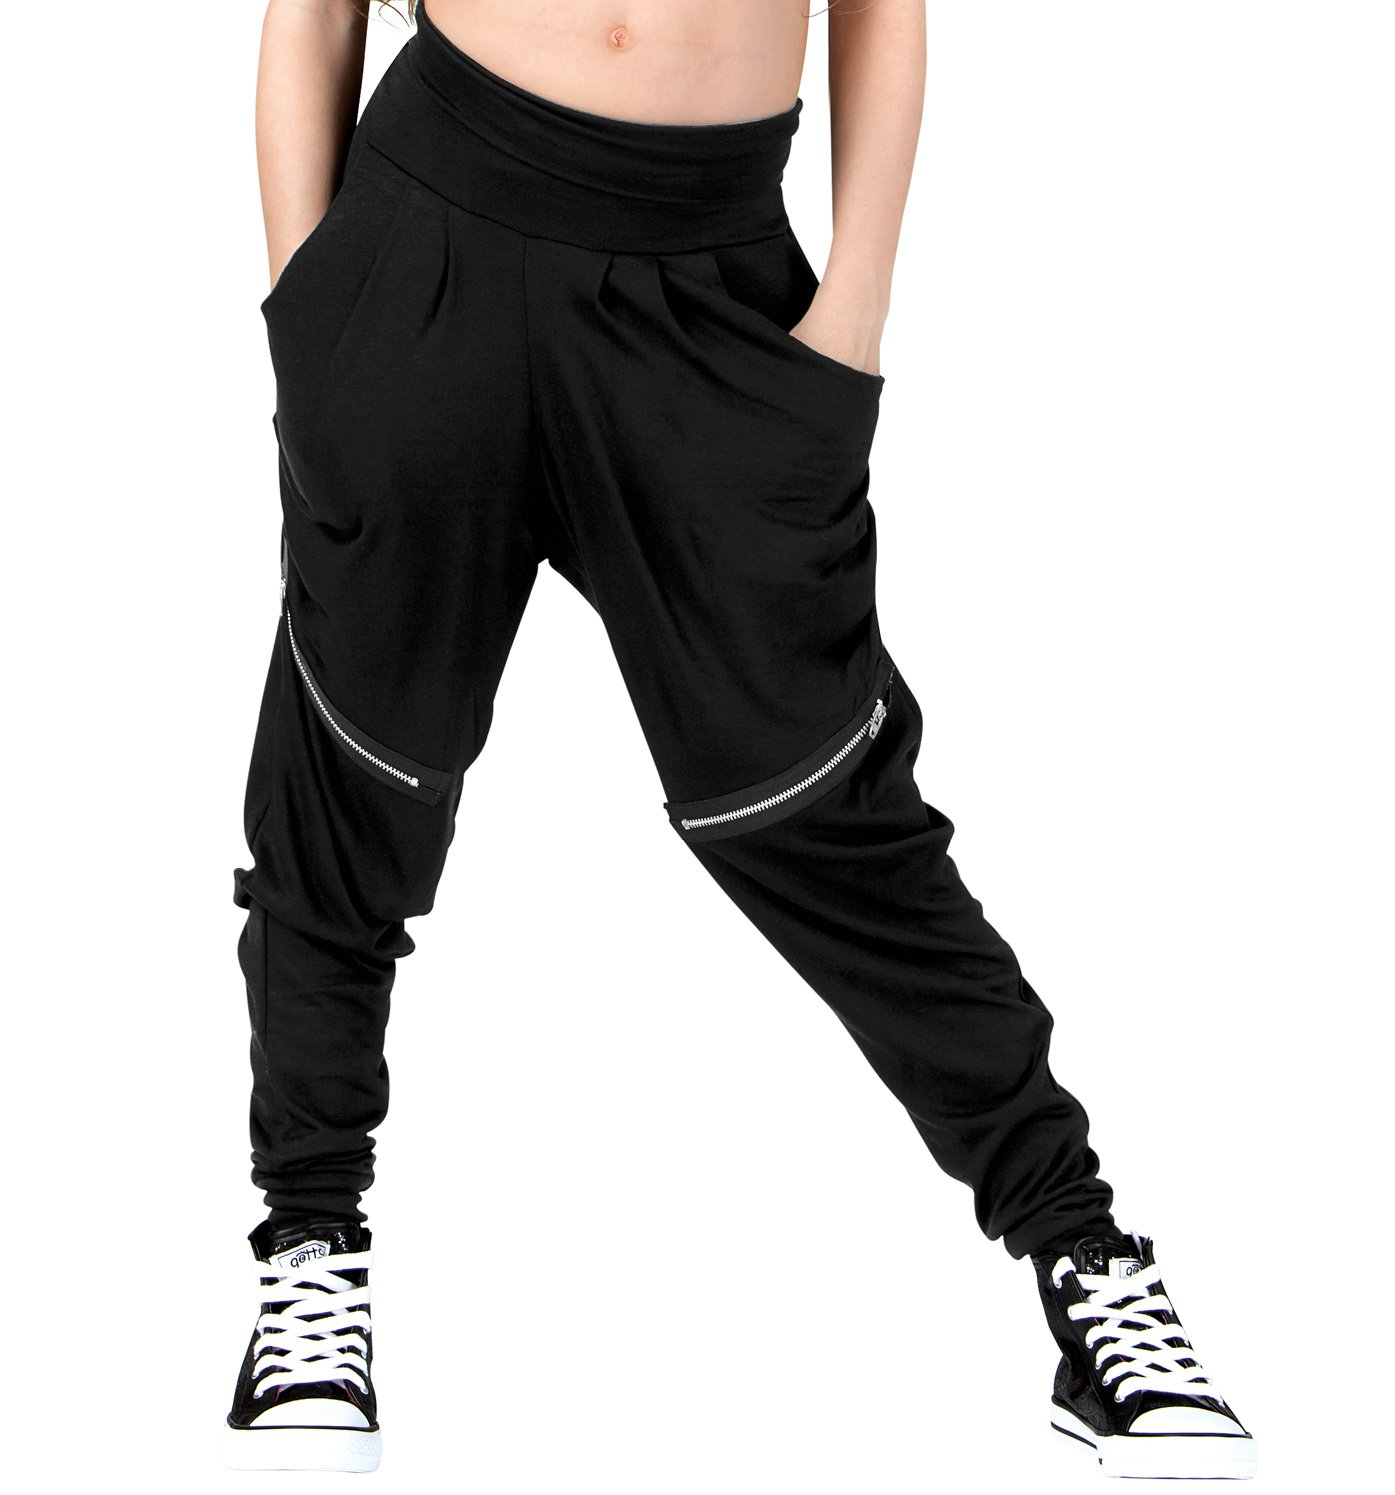 the gallery for gt harem pants women for dance